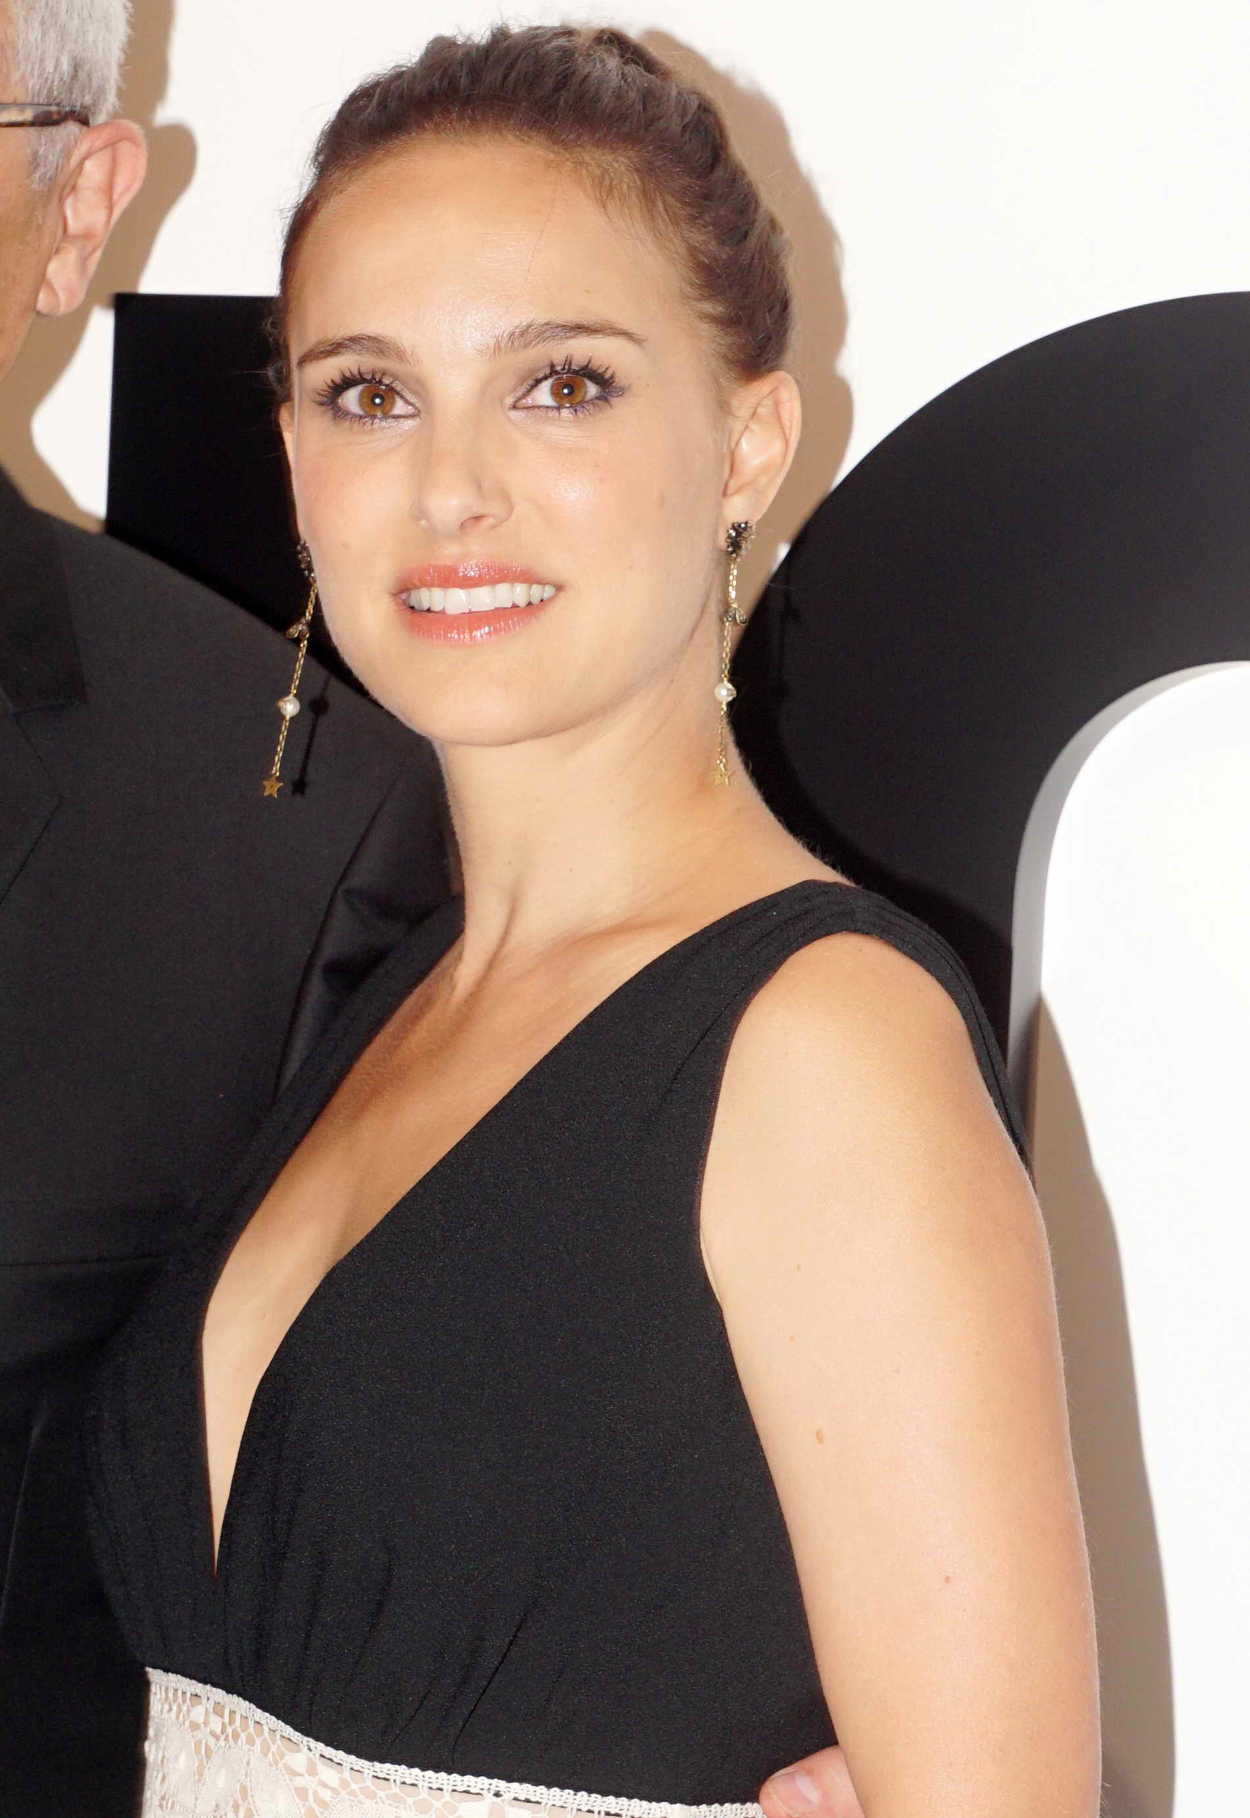 natalie portman attends miss dior perfume party in. Black Bedroom Furniture Sets. Home Design Ideas